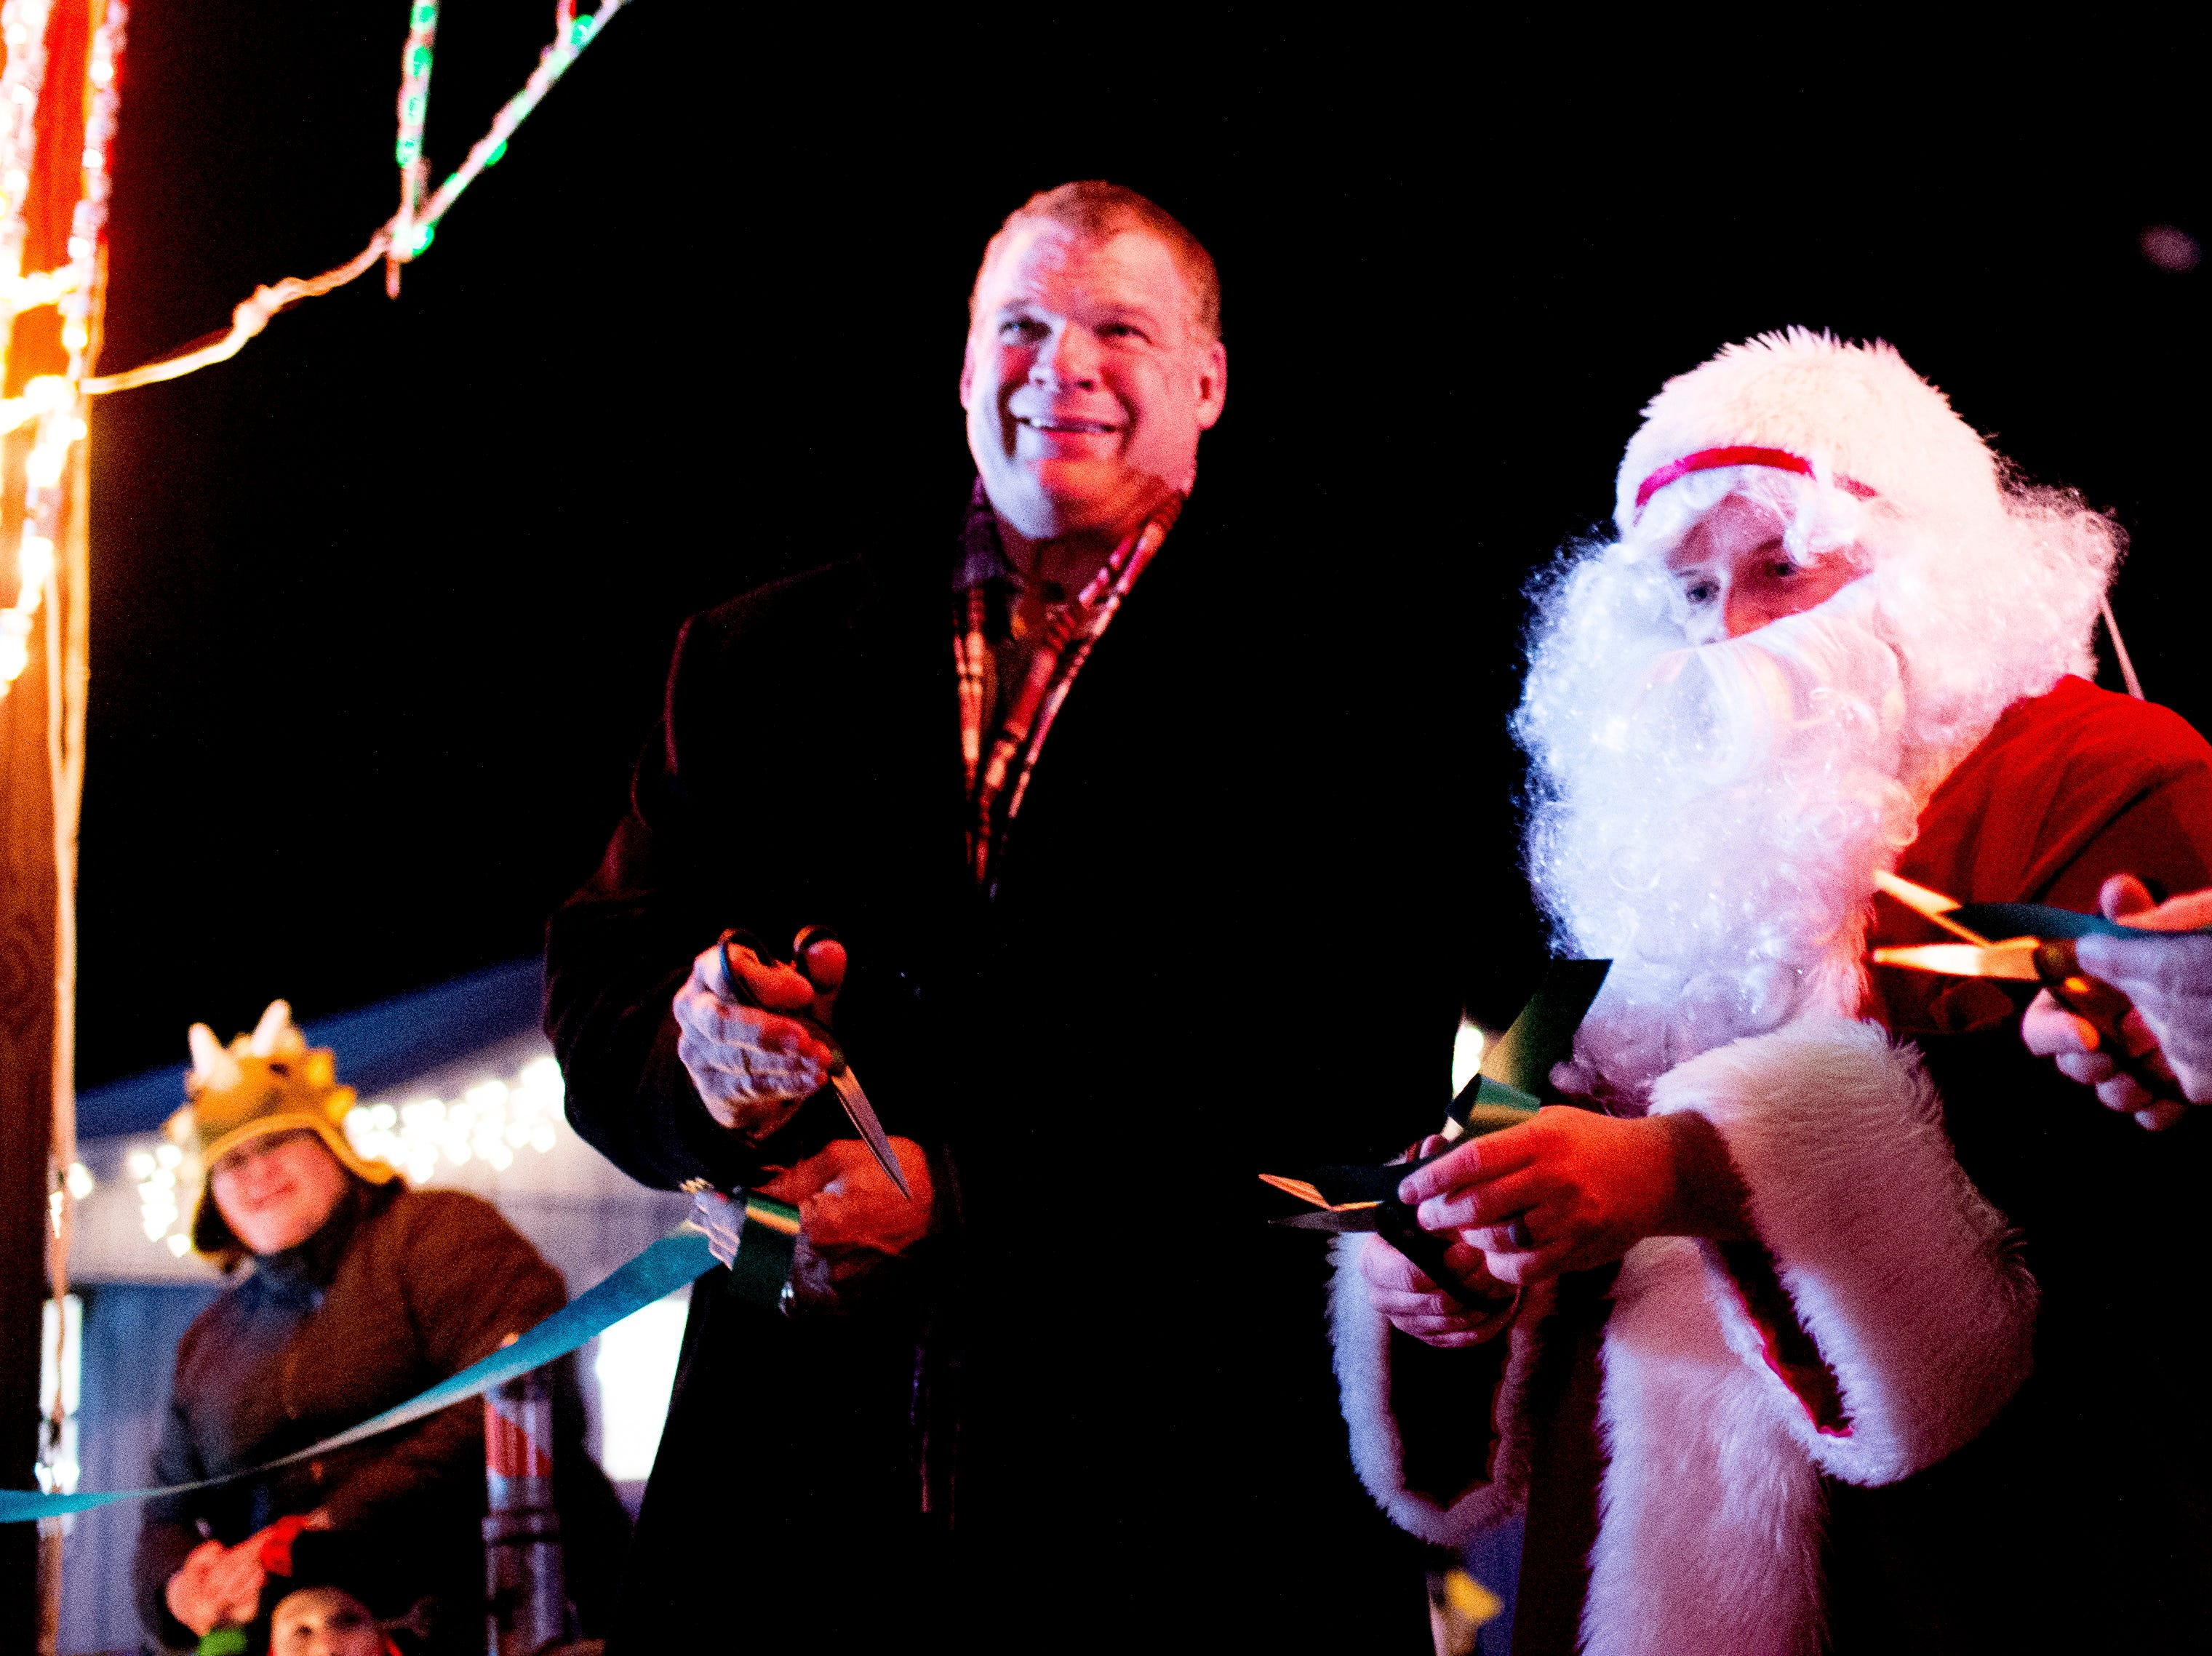 From left, Knox County Mayor Glenn Jacobs, Santa Claus and at Knox CountyÕs 20th annual Holiday Festival of Lights kick off at The Cove at Concord Park in Farragut, Tennessee on Friday, December 21, 2018. The family-friendly event is free and will run through Dec. 29 from 6 to 9 p.m., excluding Christmas Eve and Christmas Day.